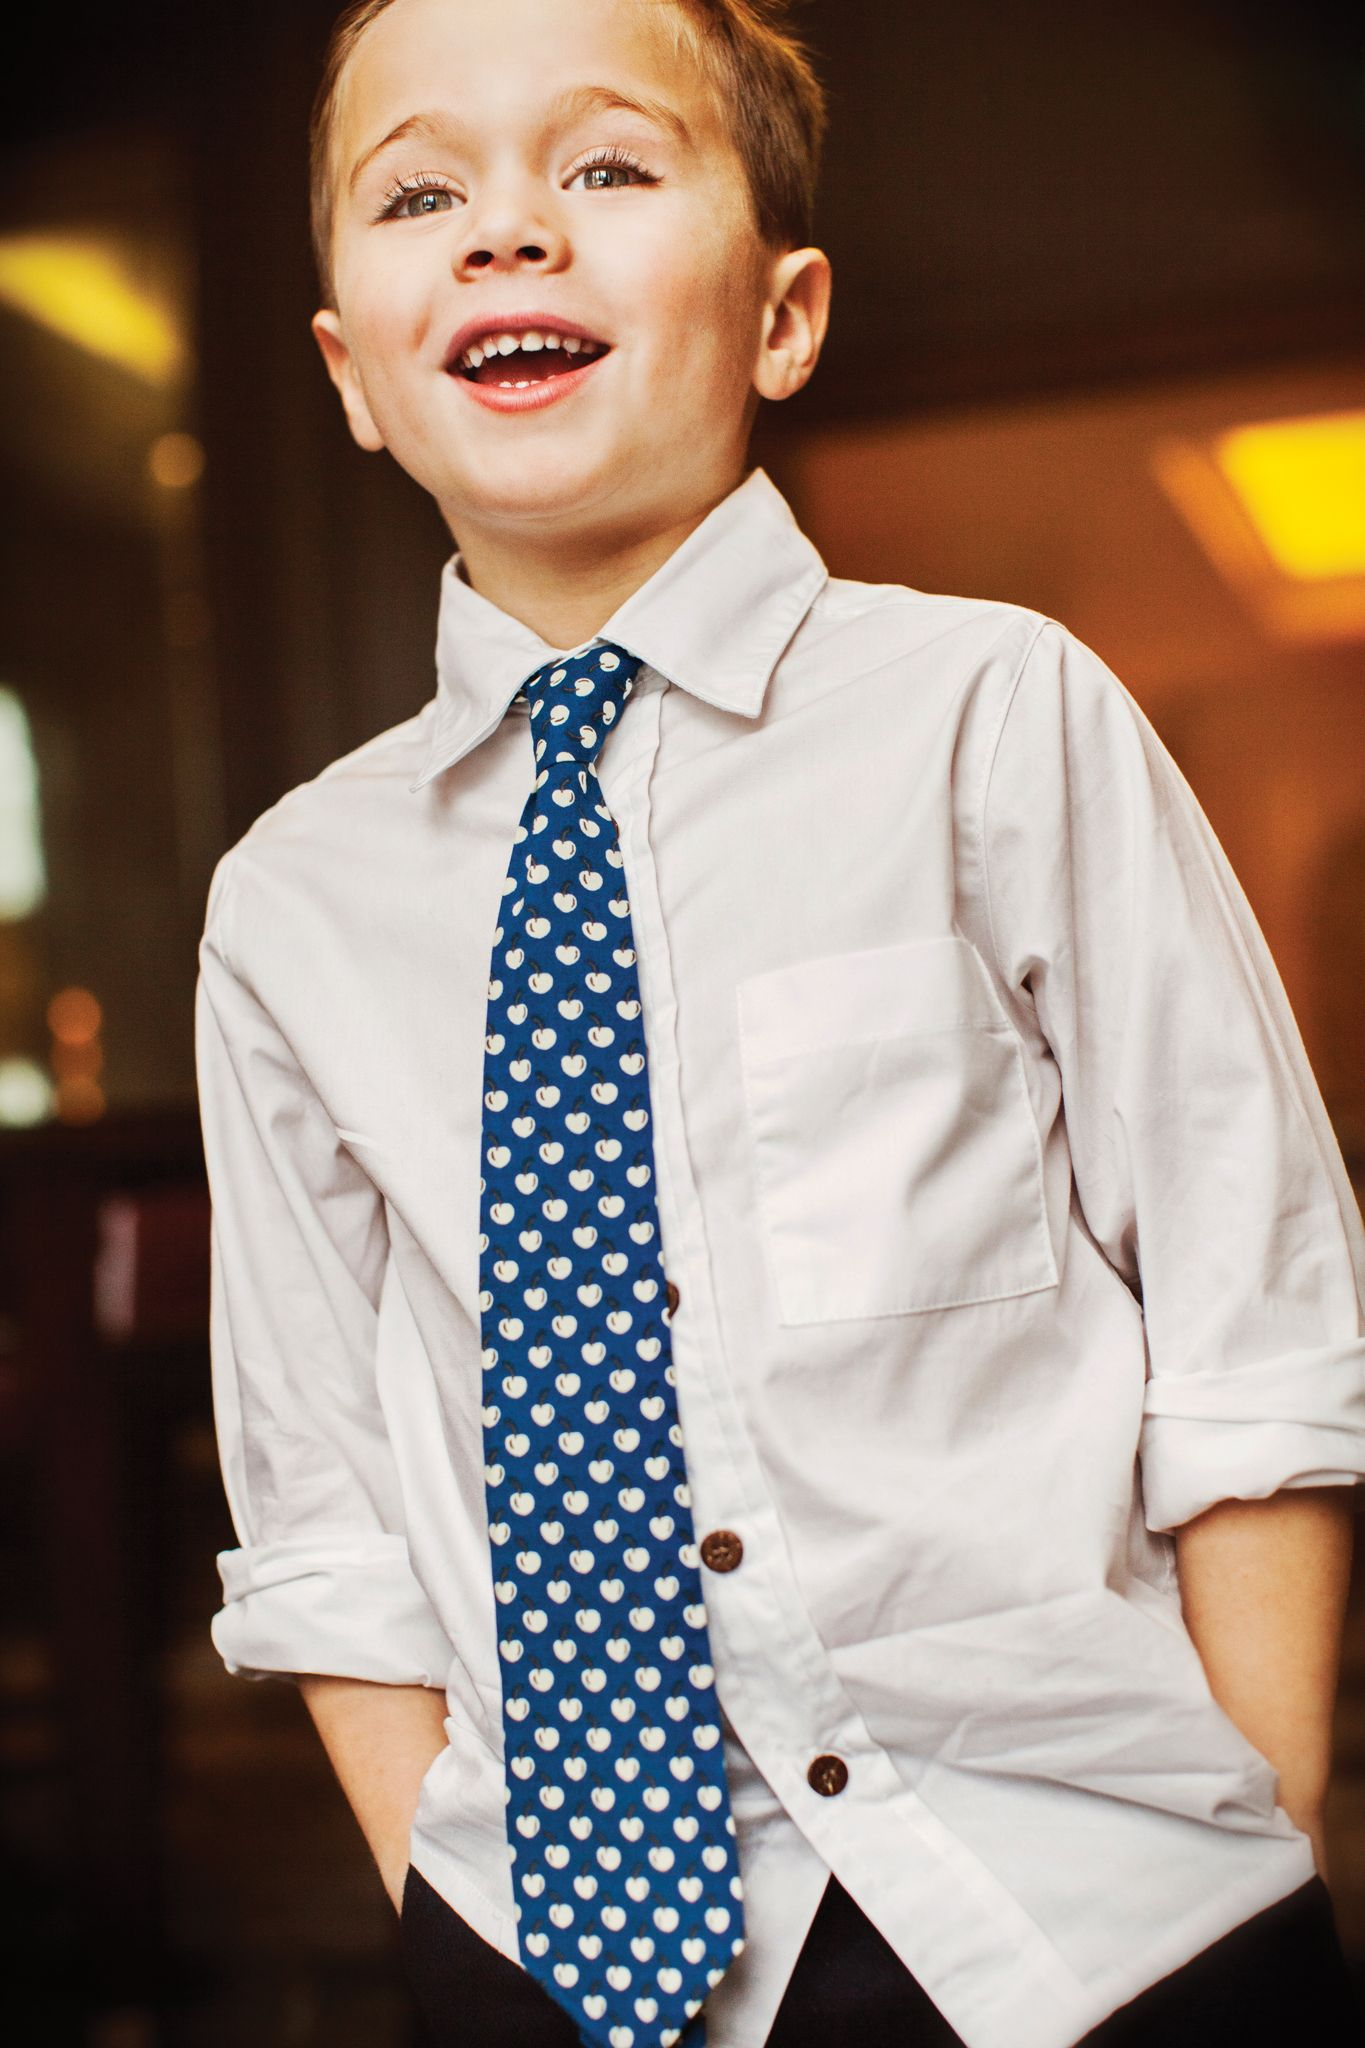 We love a boy in a tie and this one in a crisp blue apple print is an all-time favorite.  #busybeeskids #preppy #boysinties